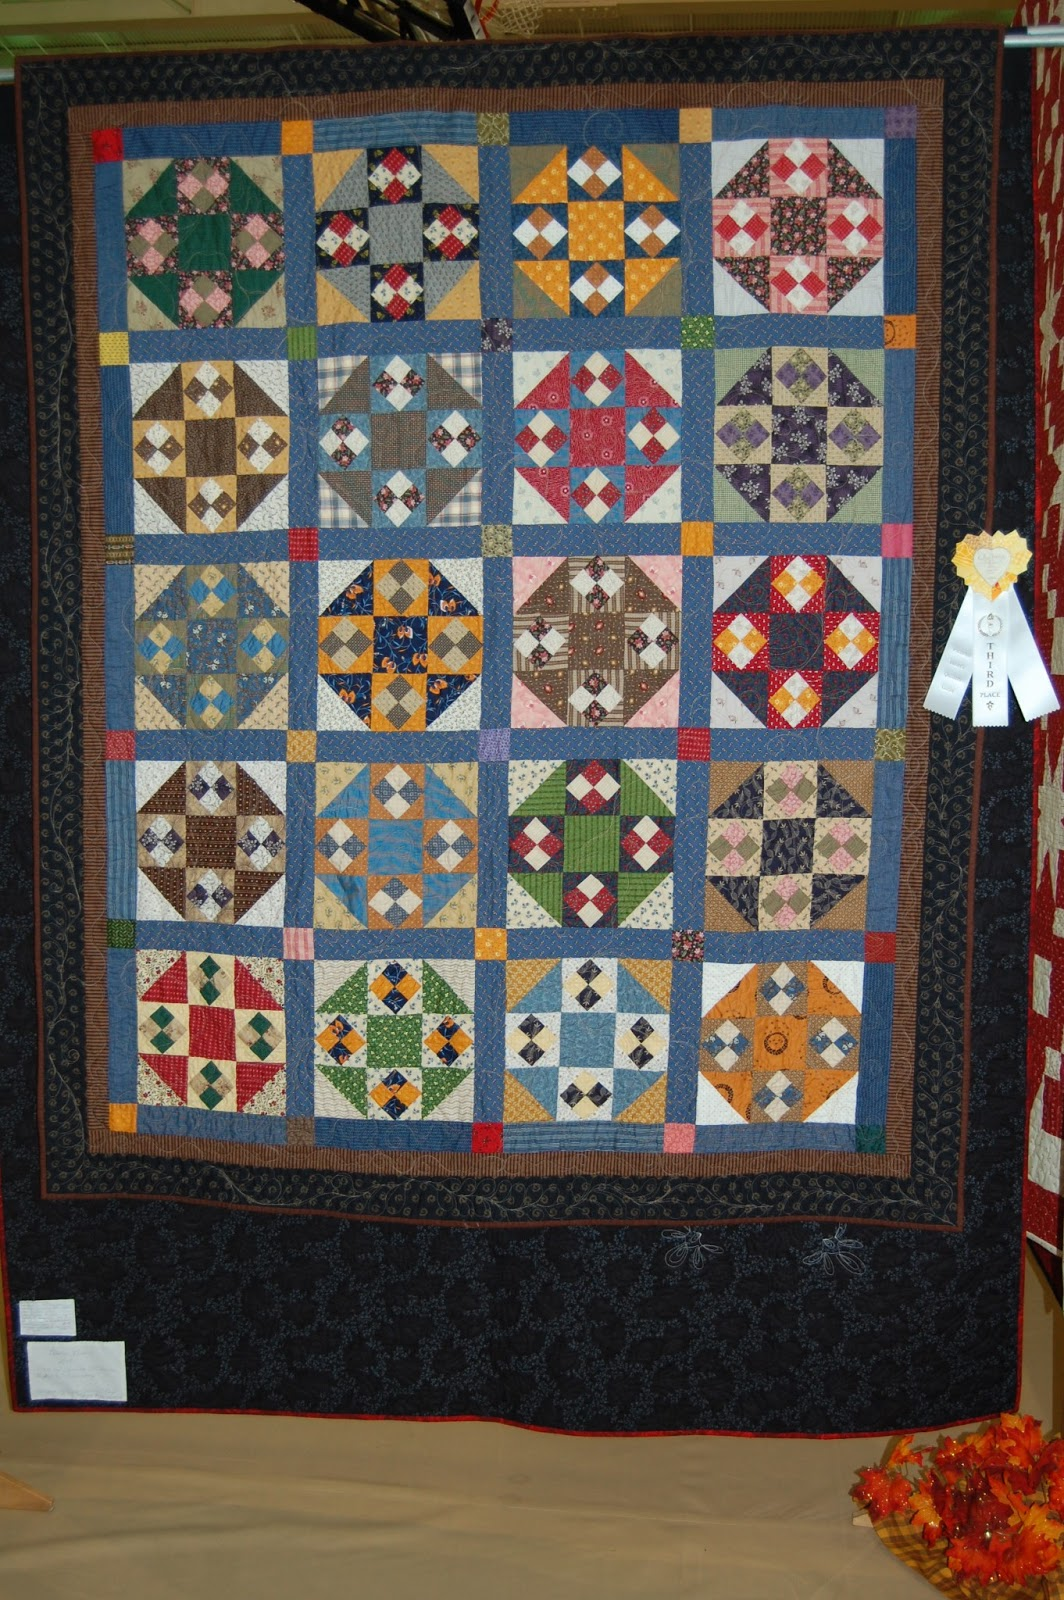 dating antique quilt fabric Sharon's antiques specializes in vintage fabric from the 19th century to the 1950's we carry feedsacks, vintage and antique cotton fabric, rayons, upholstery and drapery fabric, and.